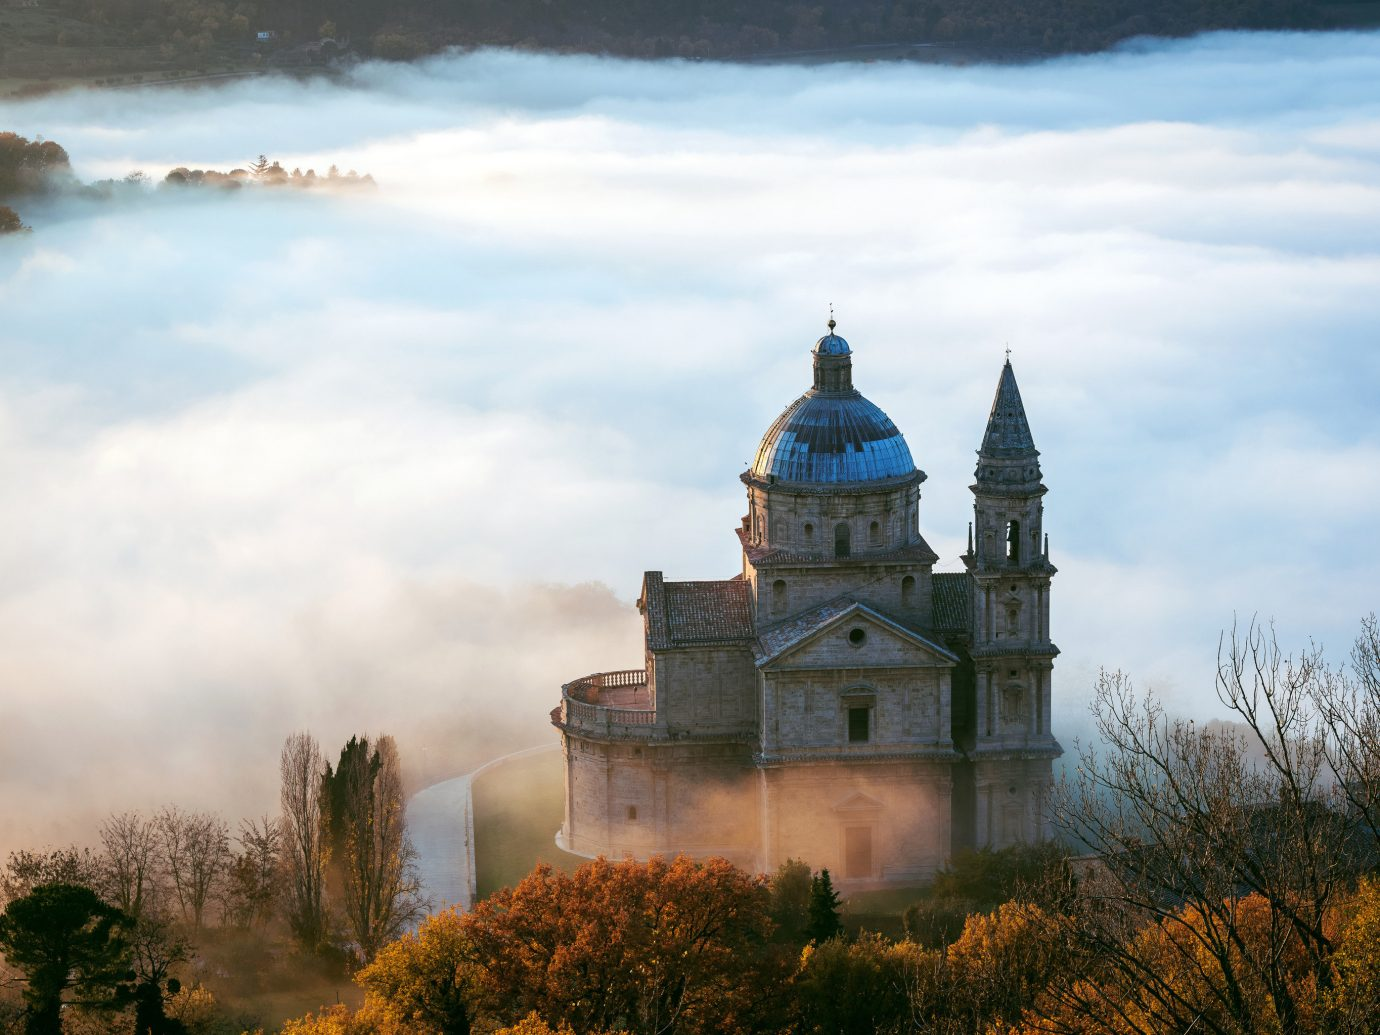 Trip Ideas outdoor tree sky building tower atmospheric phenomenon cloud reflection morning château hill evening rural area landscape castle autumn clouds surrounded day